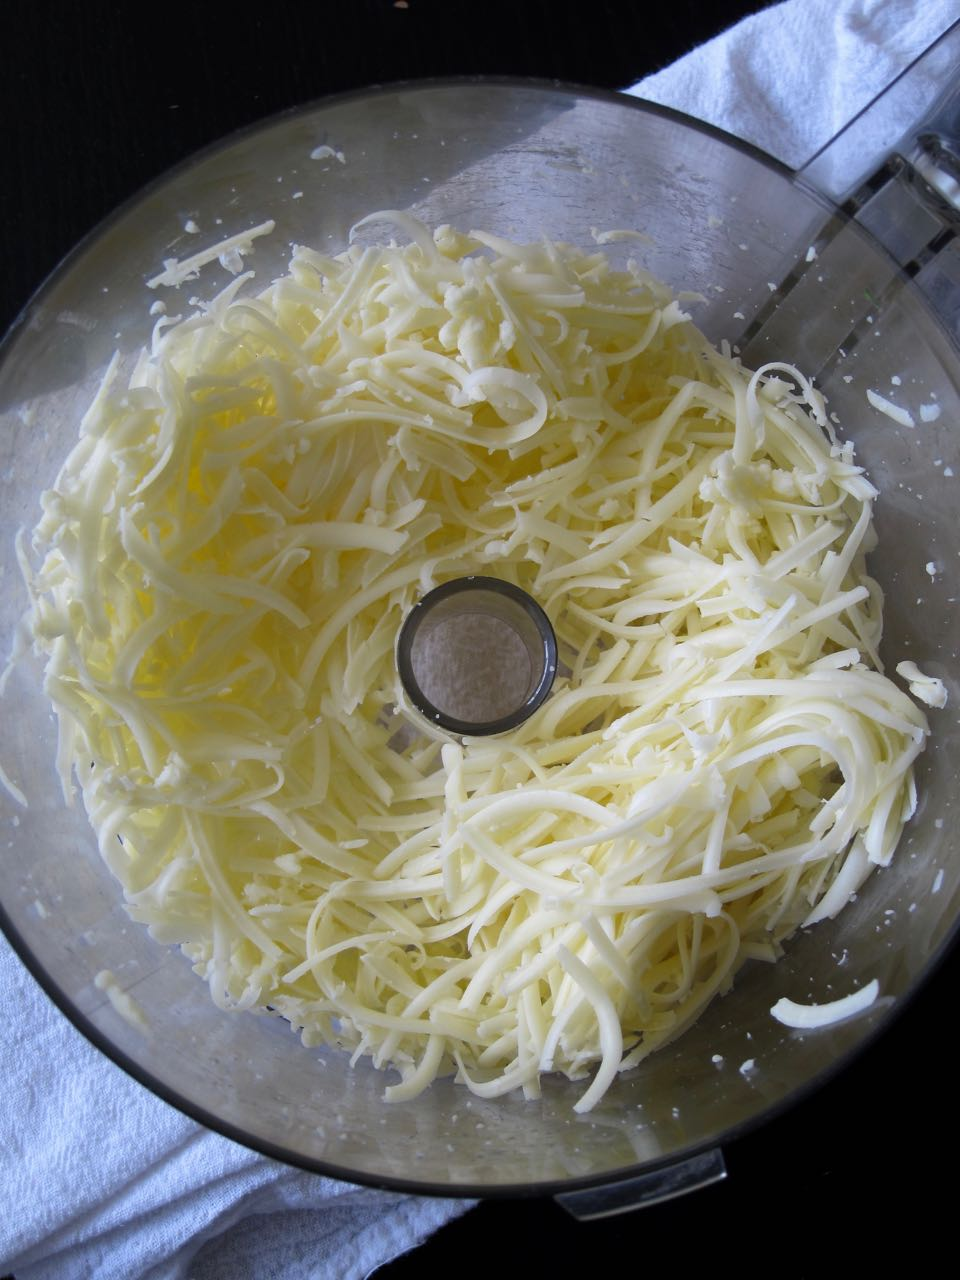 Shredded White Cheddar Cheese.jpg